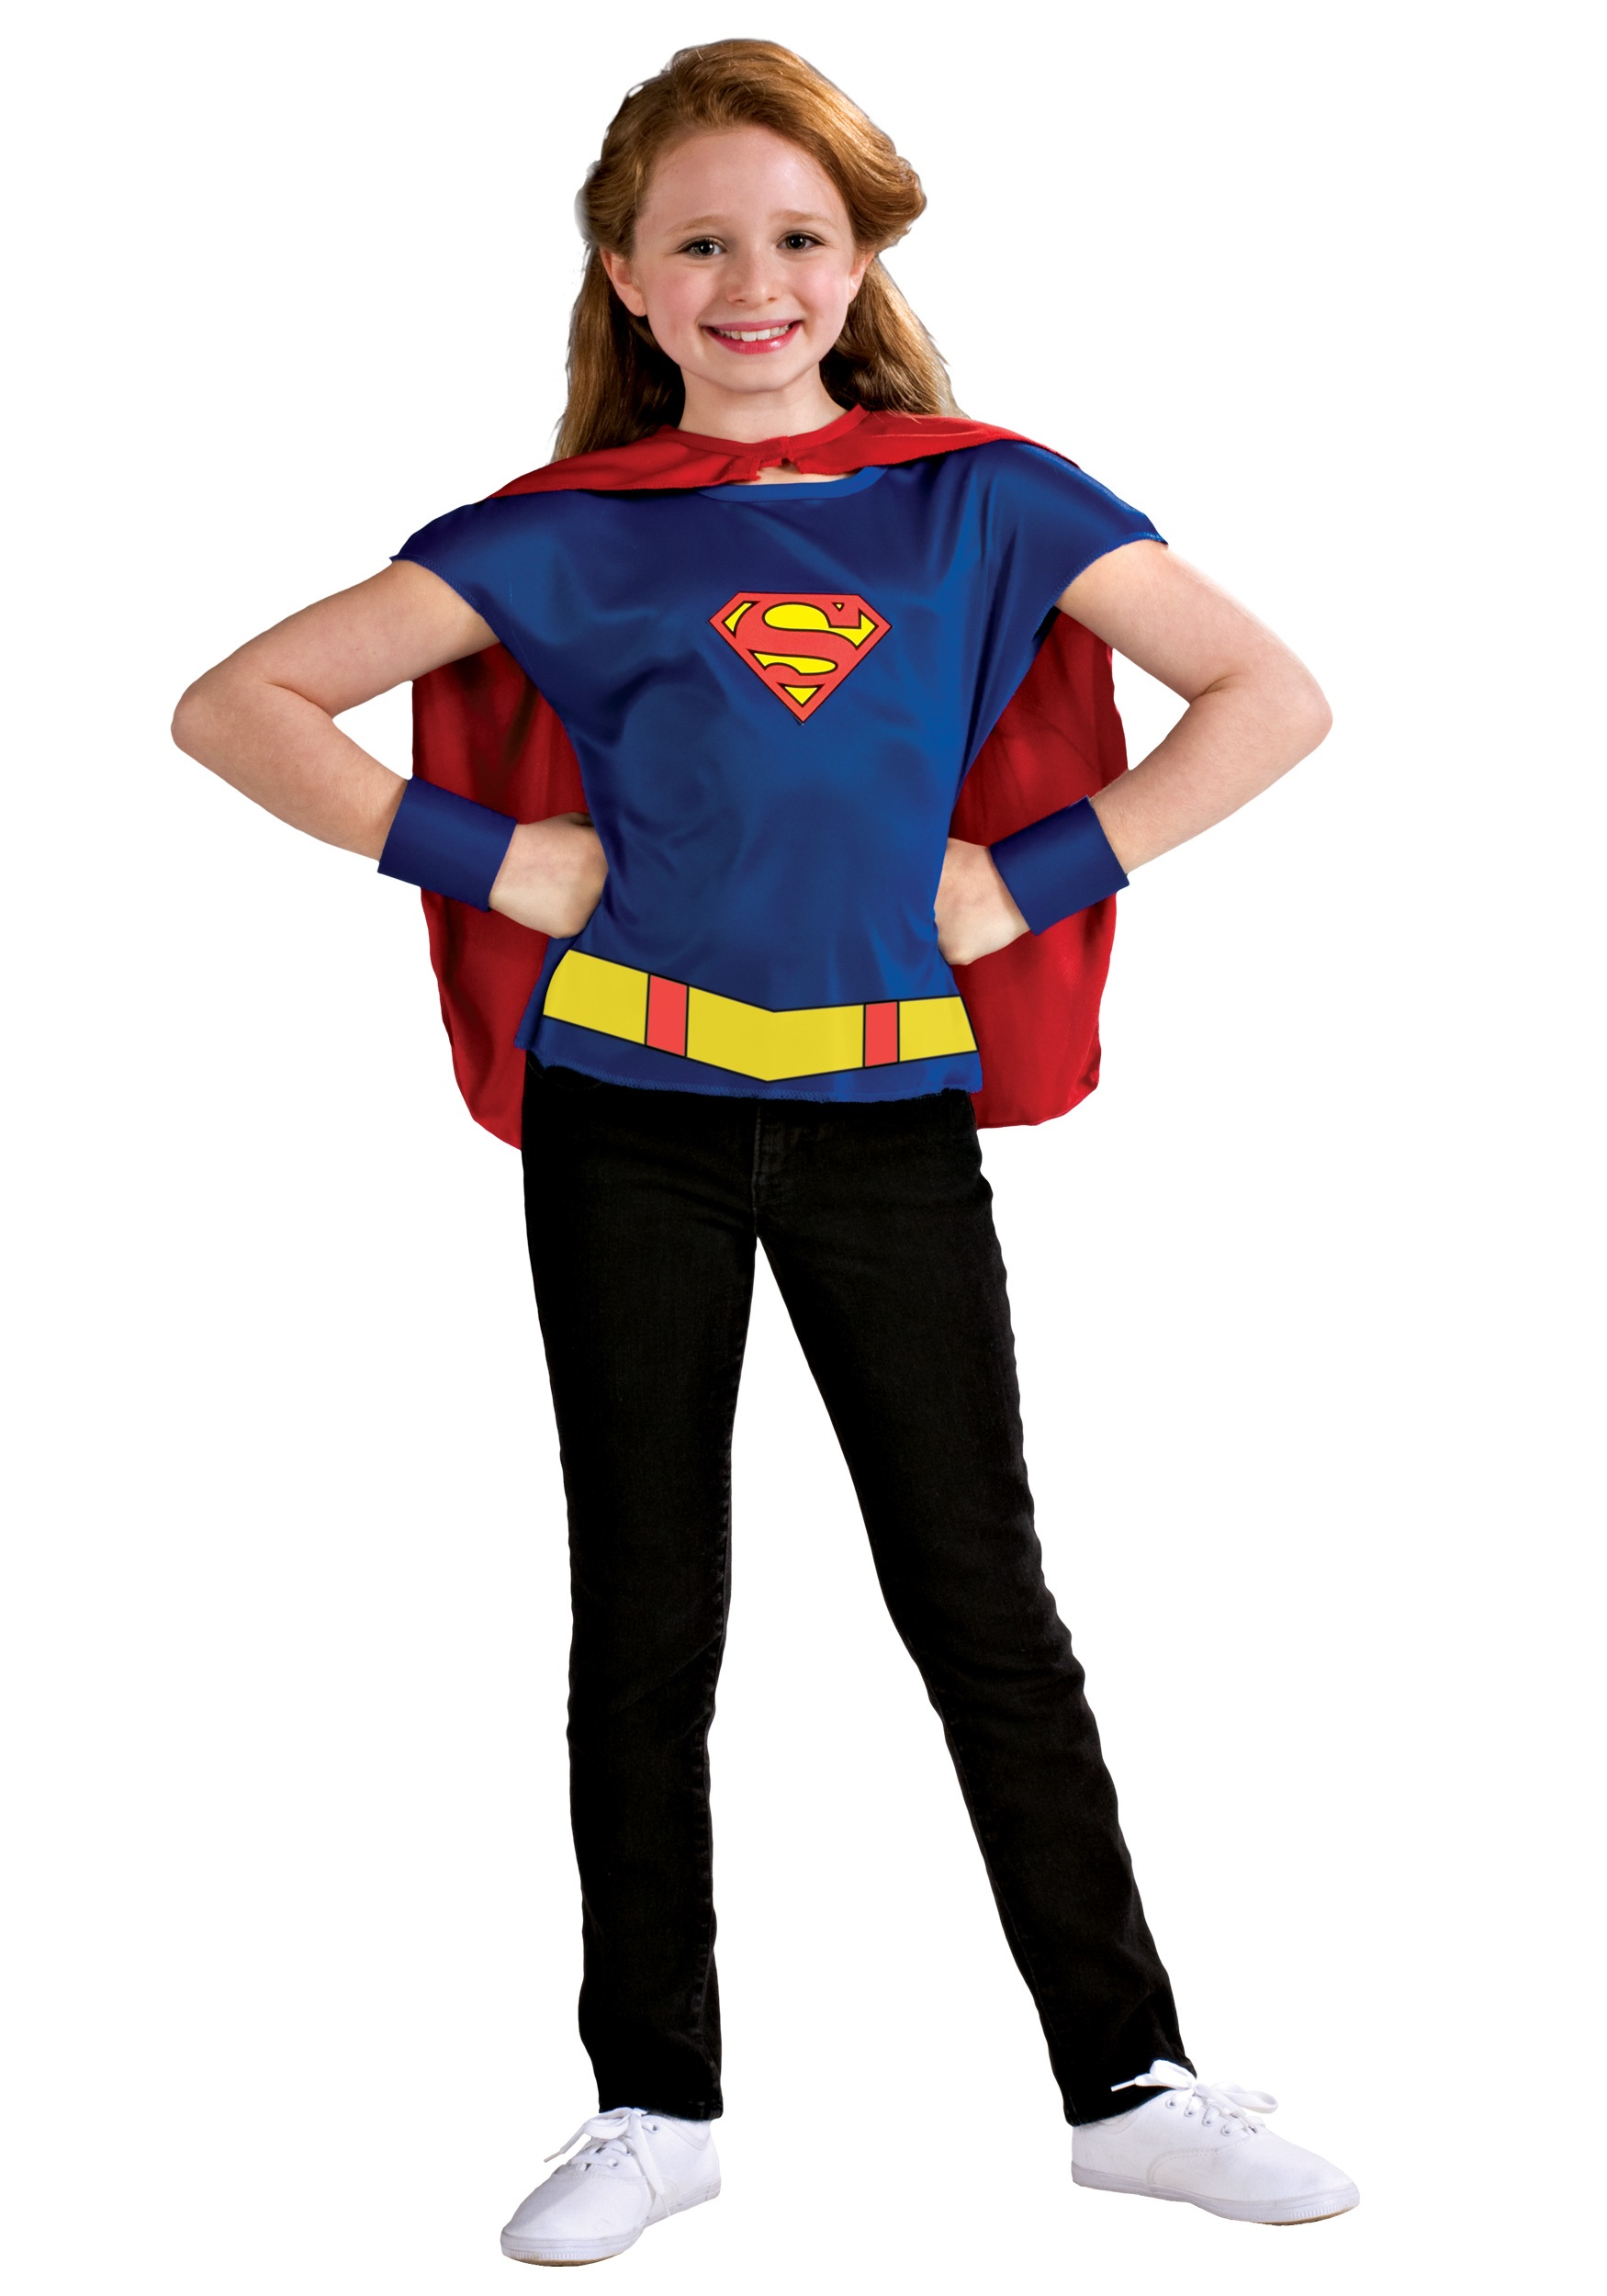 Supergirl Costume Set  sc 1 st  Halloween Costumes : supergirl costume for adults  - Germanpascual.Com